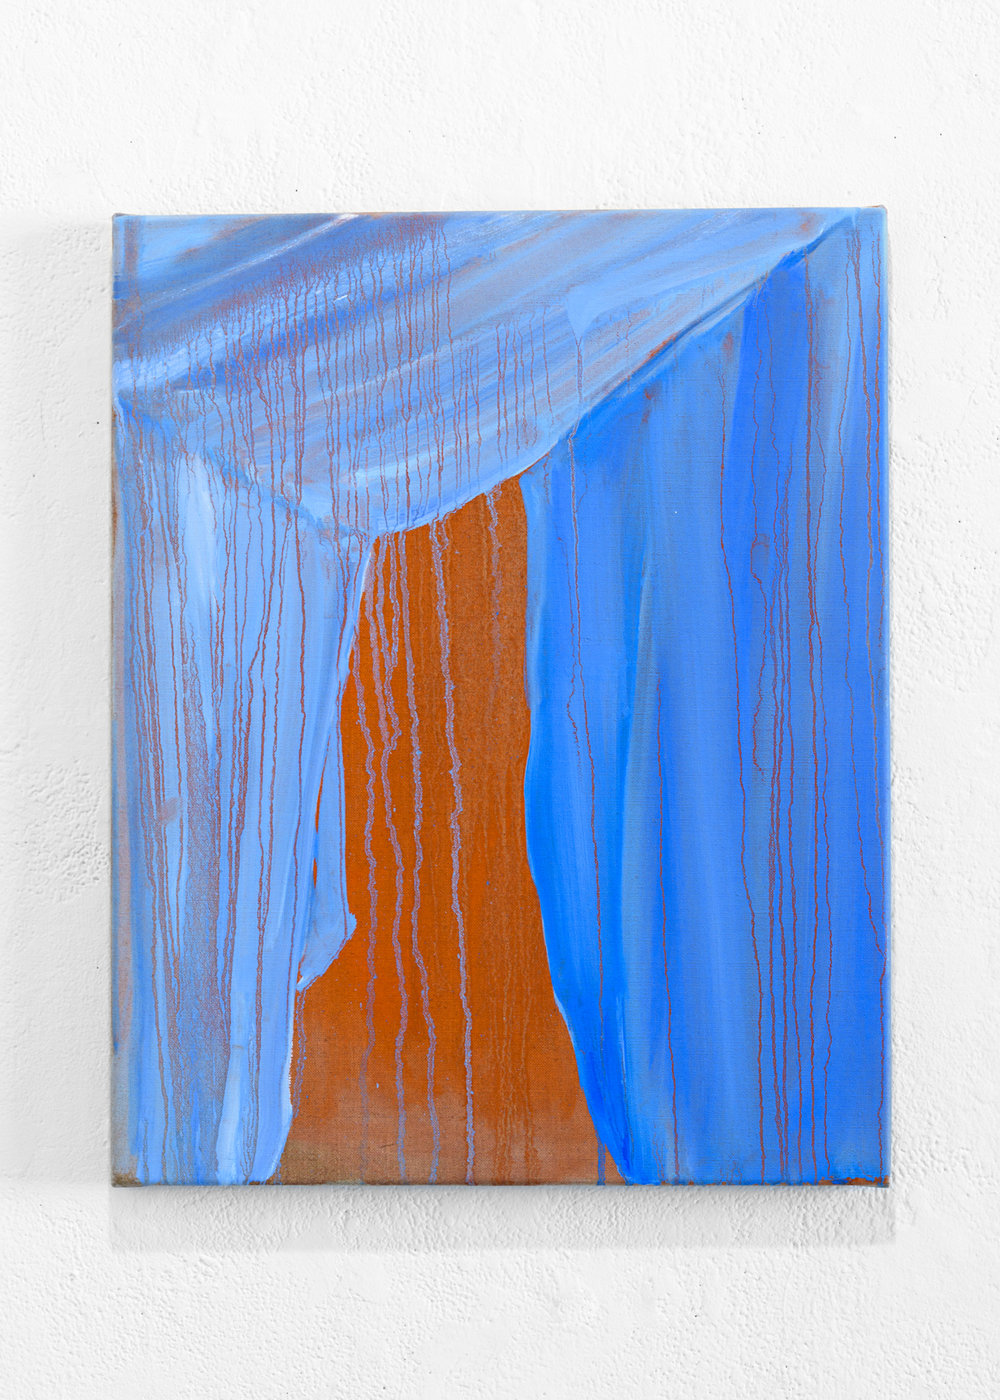 INTERIOR PLACEMENTS  Interior Placement 6 (Sheets)  Oil onlinen, 51cm x 41cm, 2016